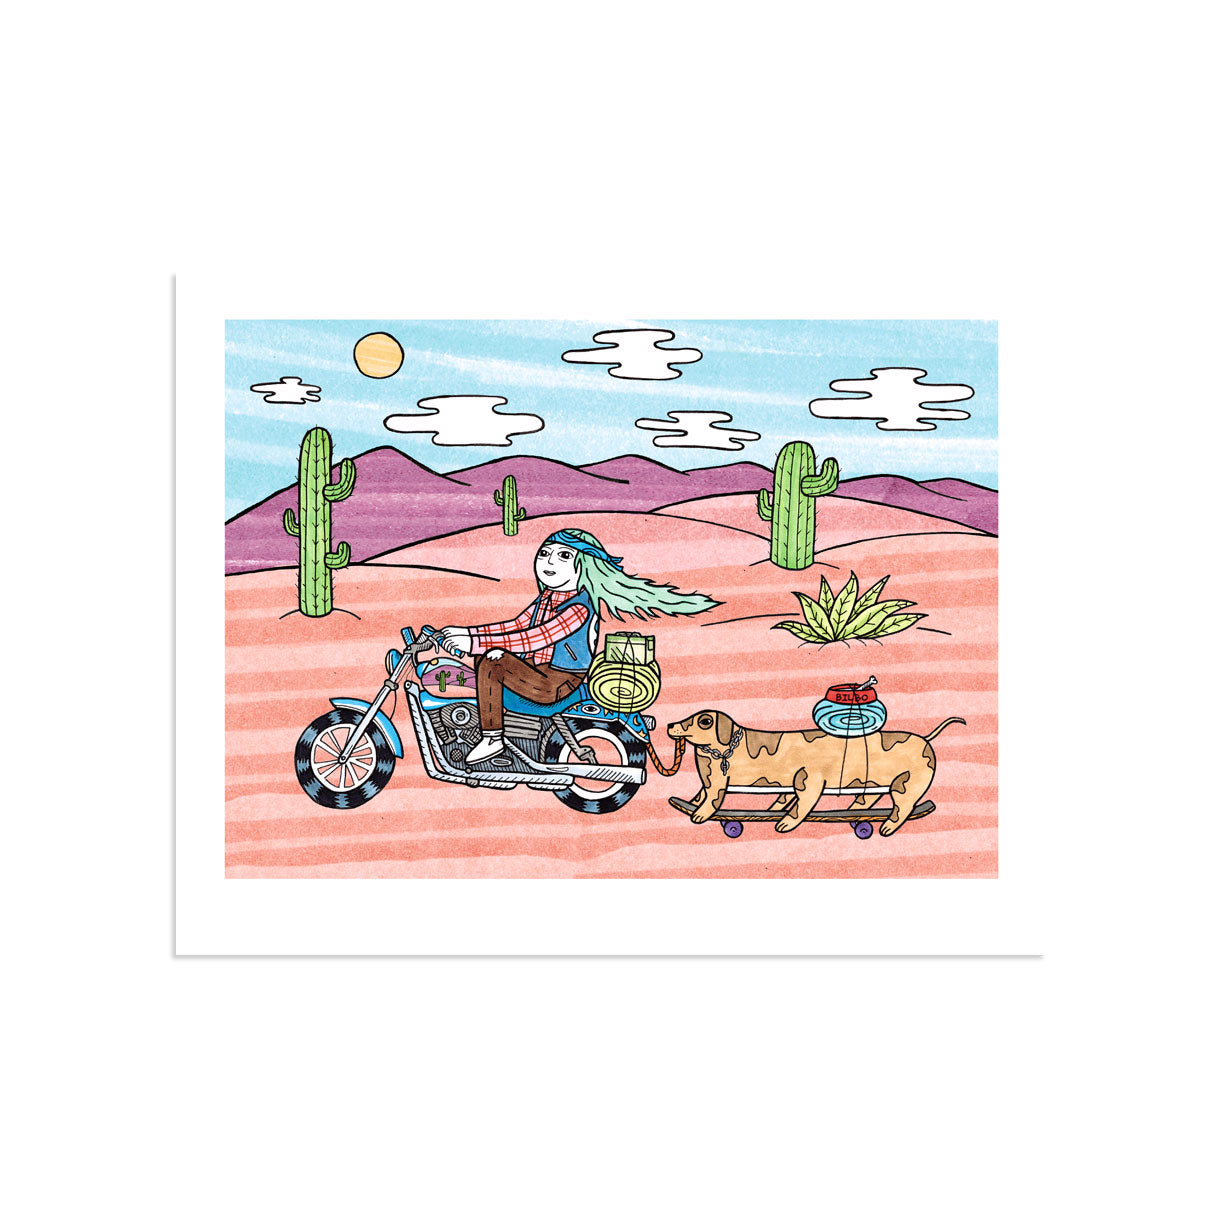 On the Magical Bike Adventure... by Michael C. Hsiung | Print | Poster Child Prints